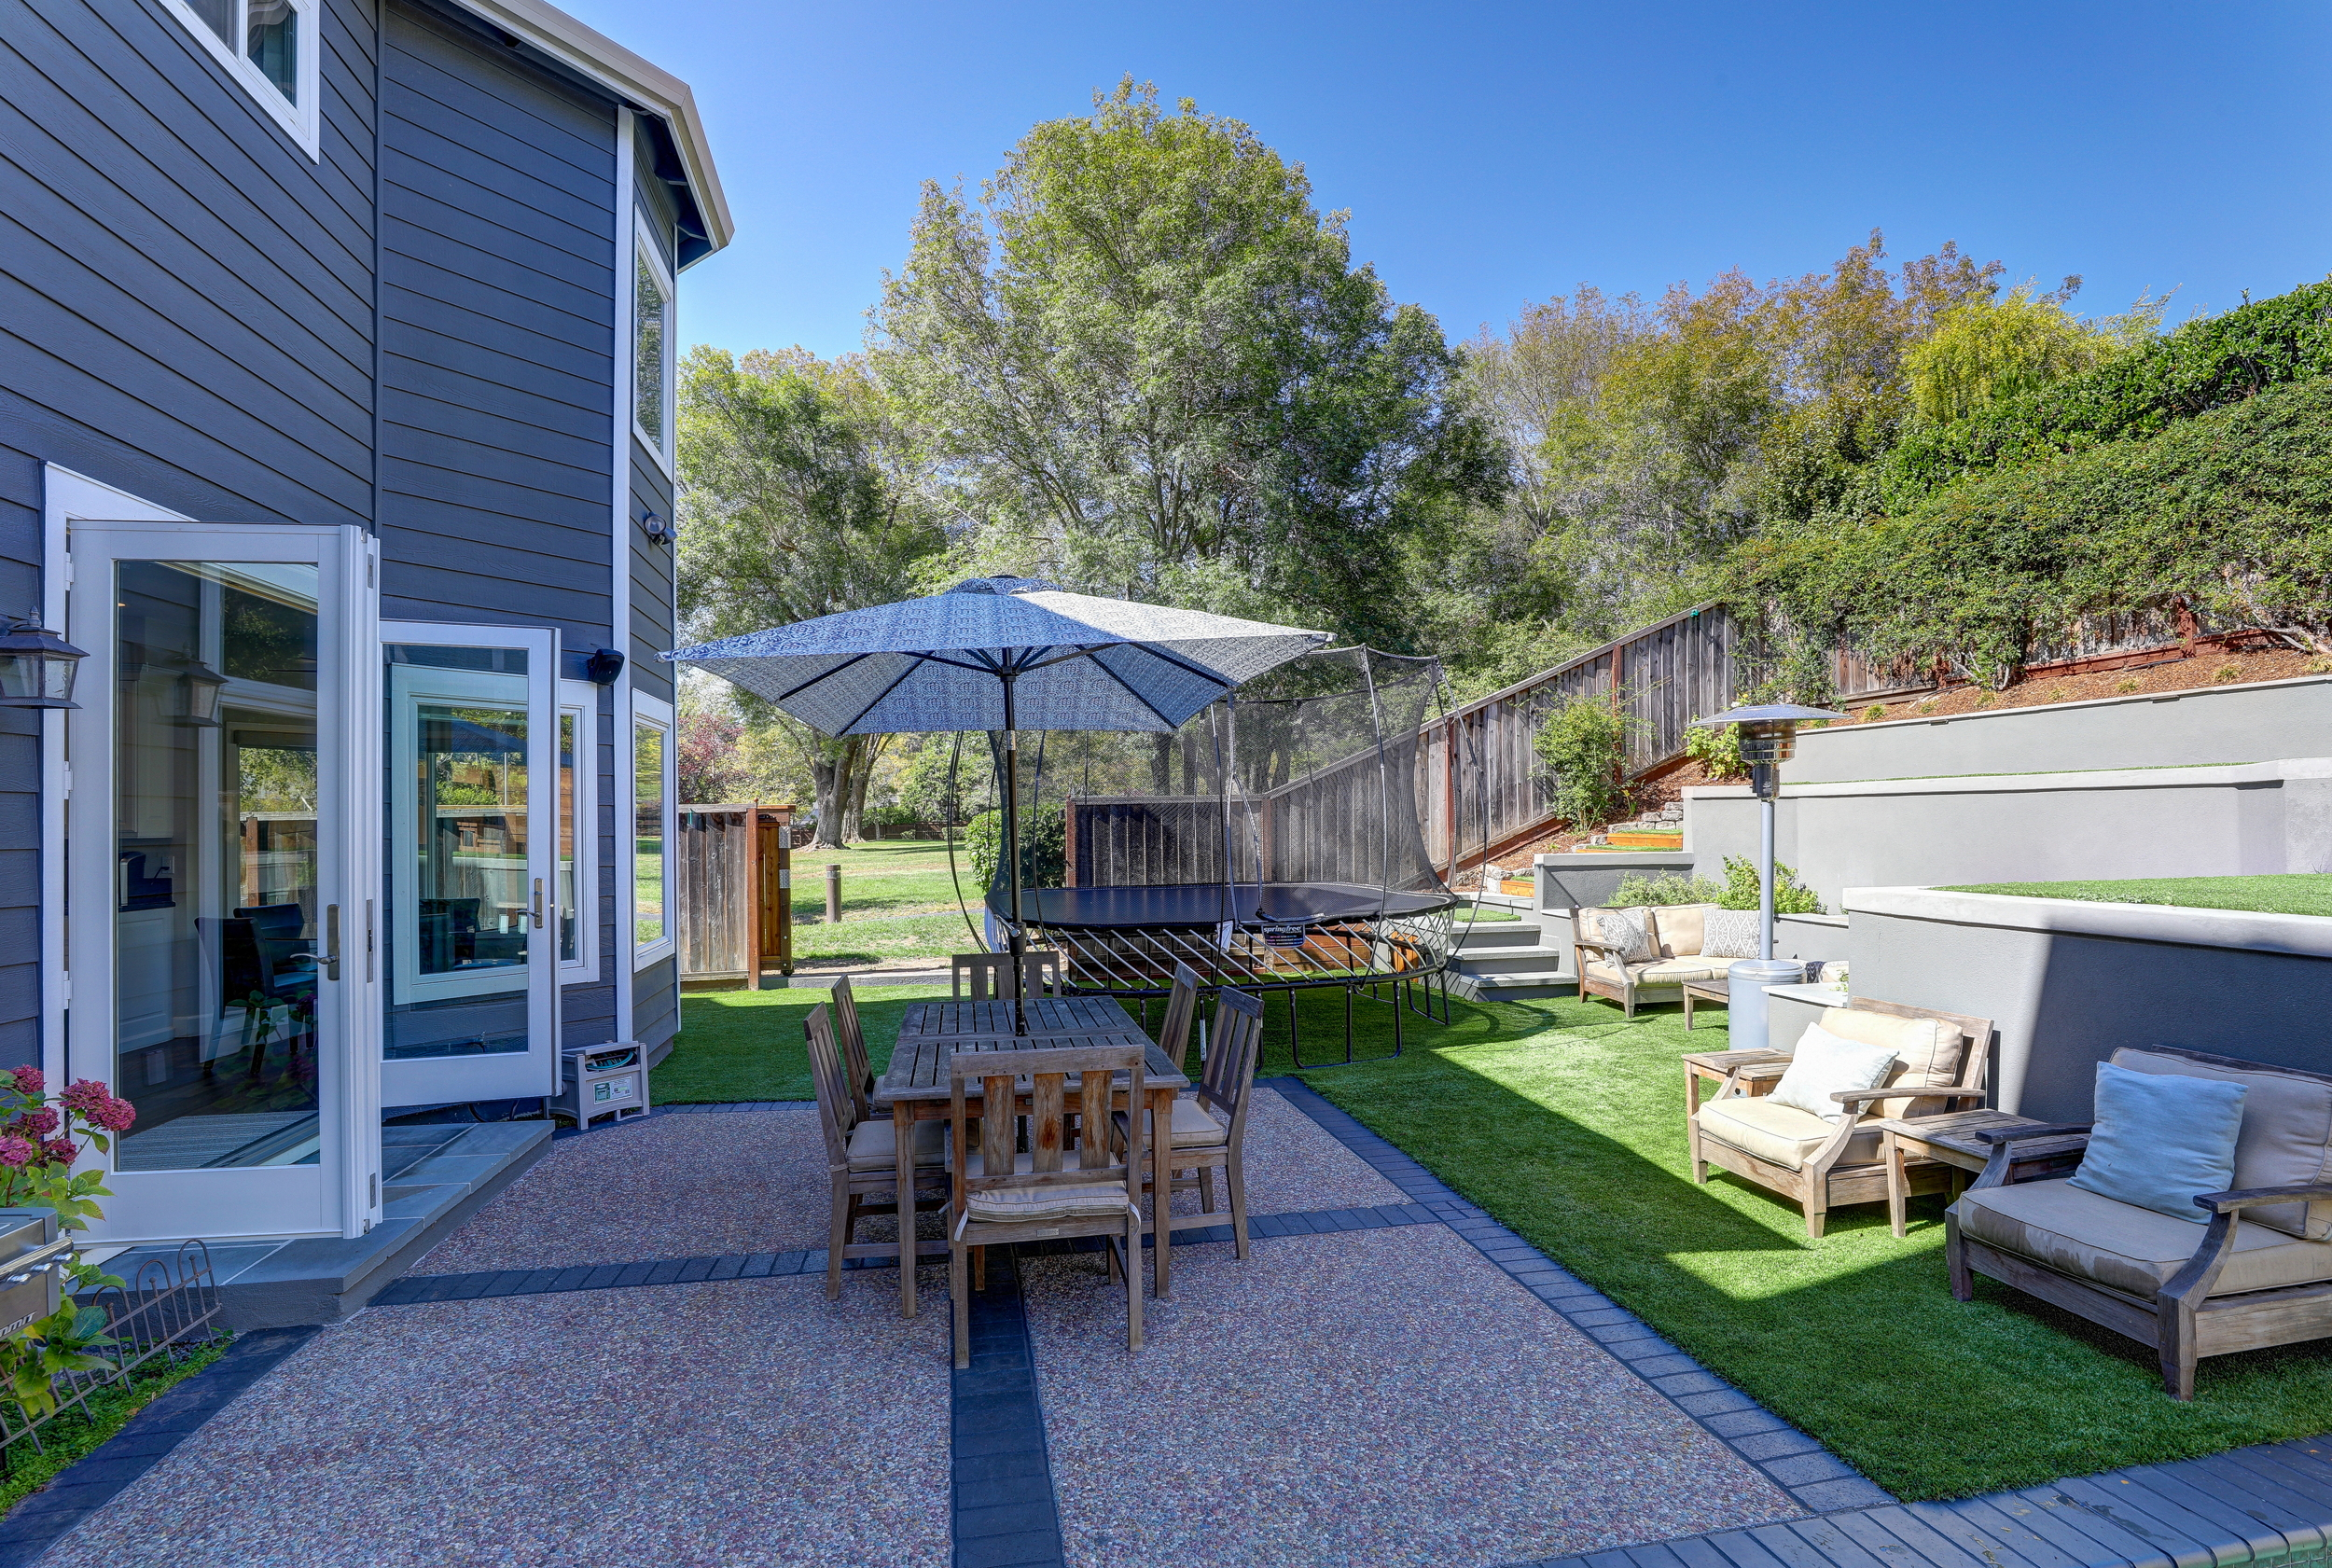 8Parkside 61 - Own Marin with Compass - Marin County Best Realtor.jpg